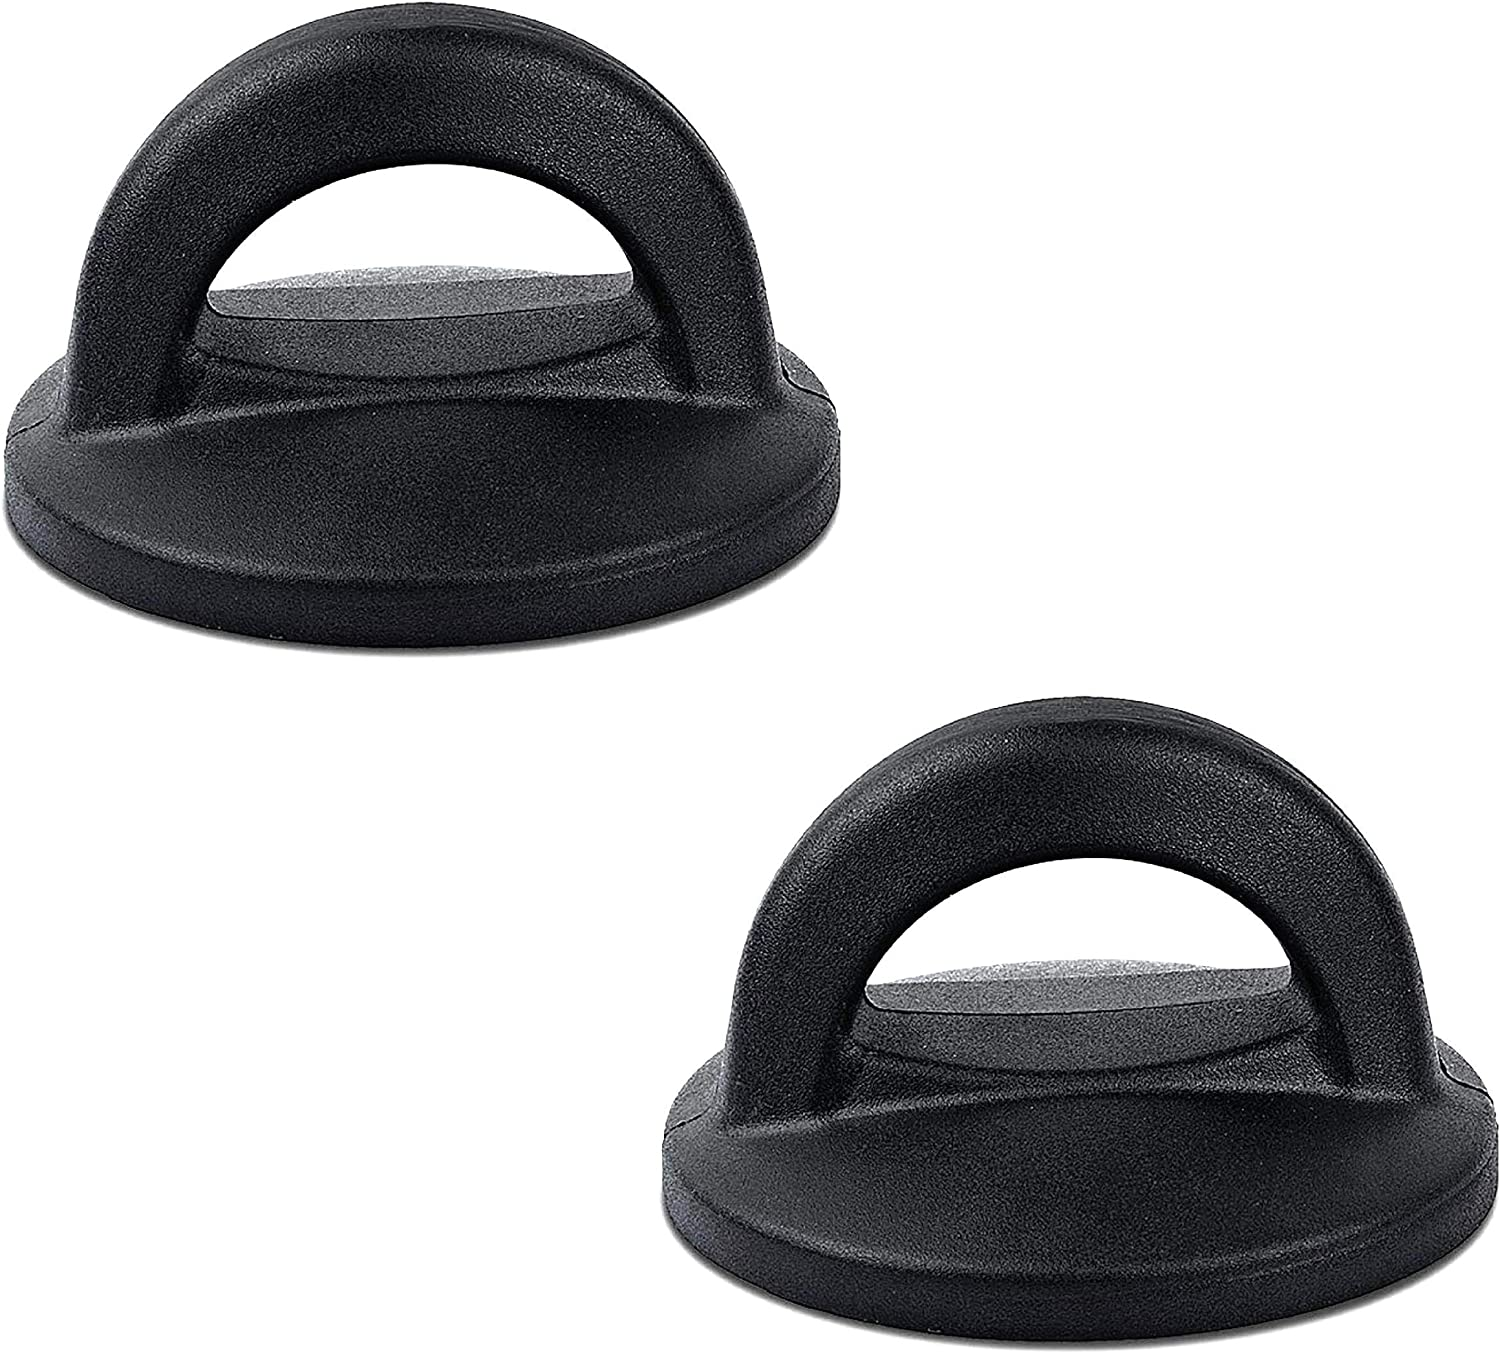 Universal Pot Lid Replacement Knobs Pan Lid Holding Handles. (2 Pack)